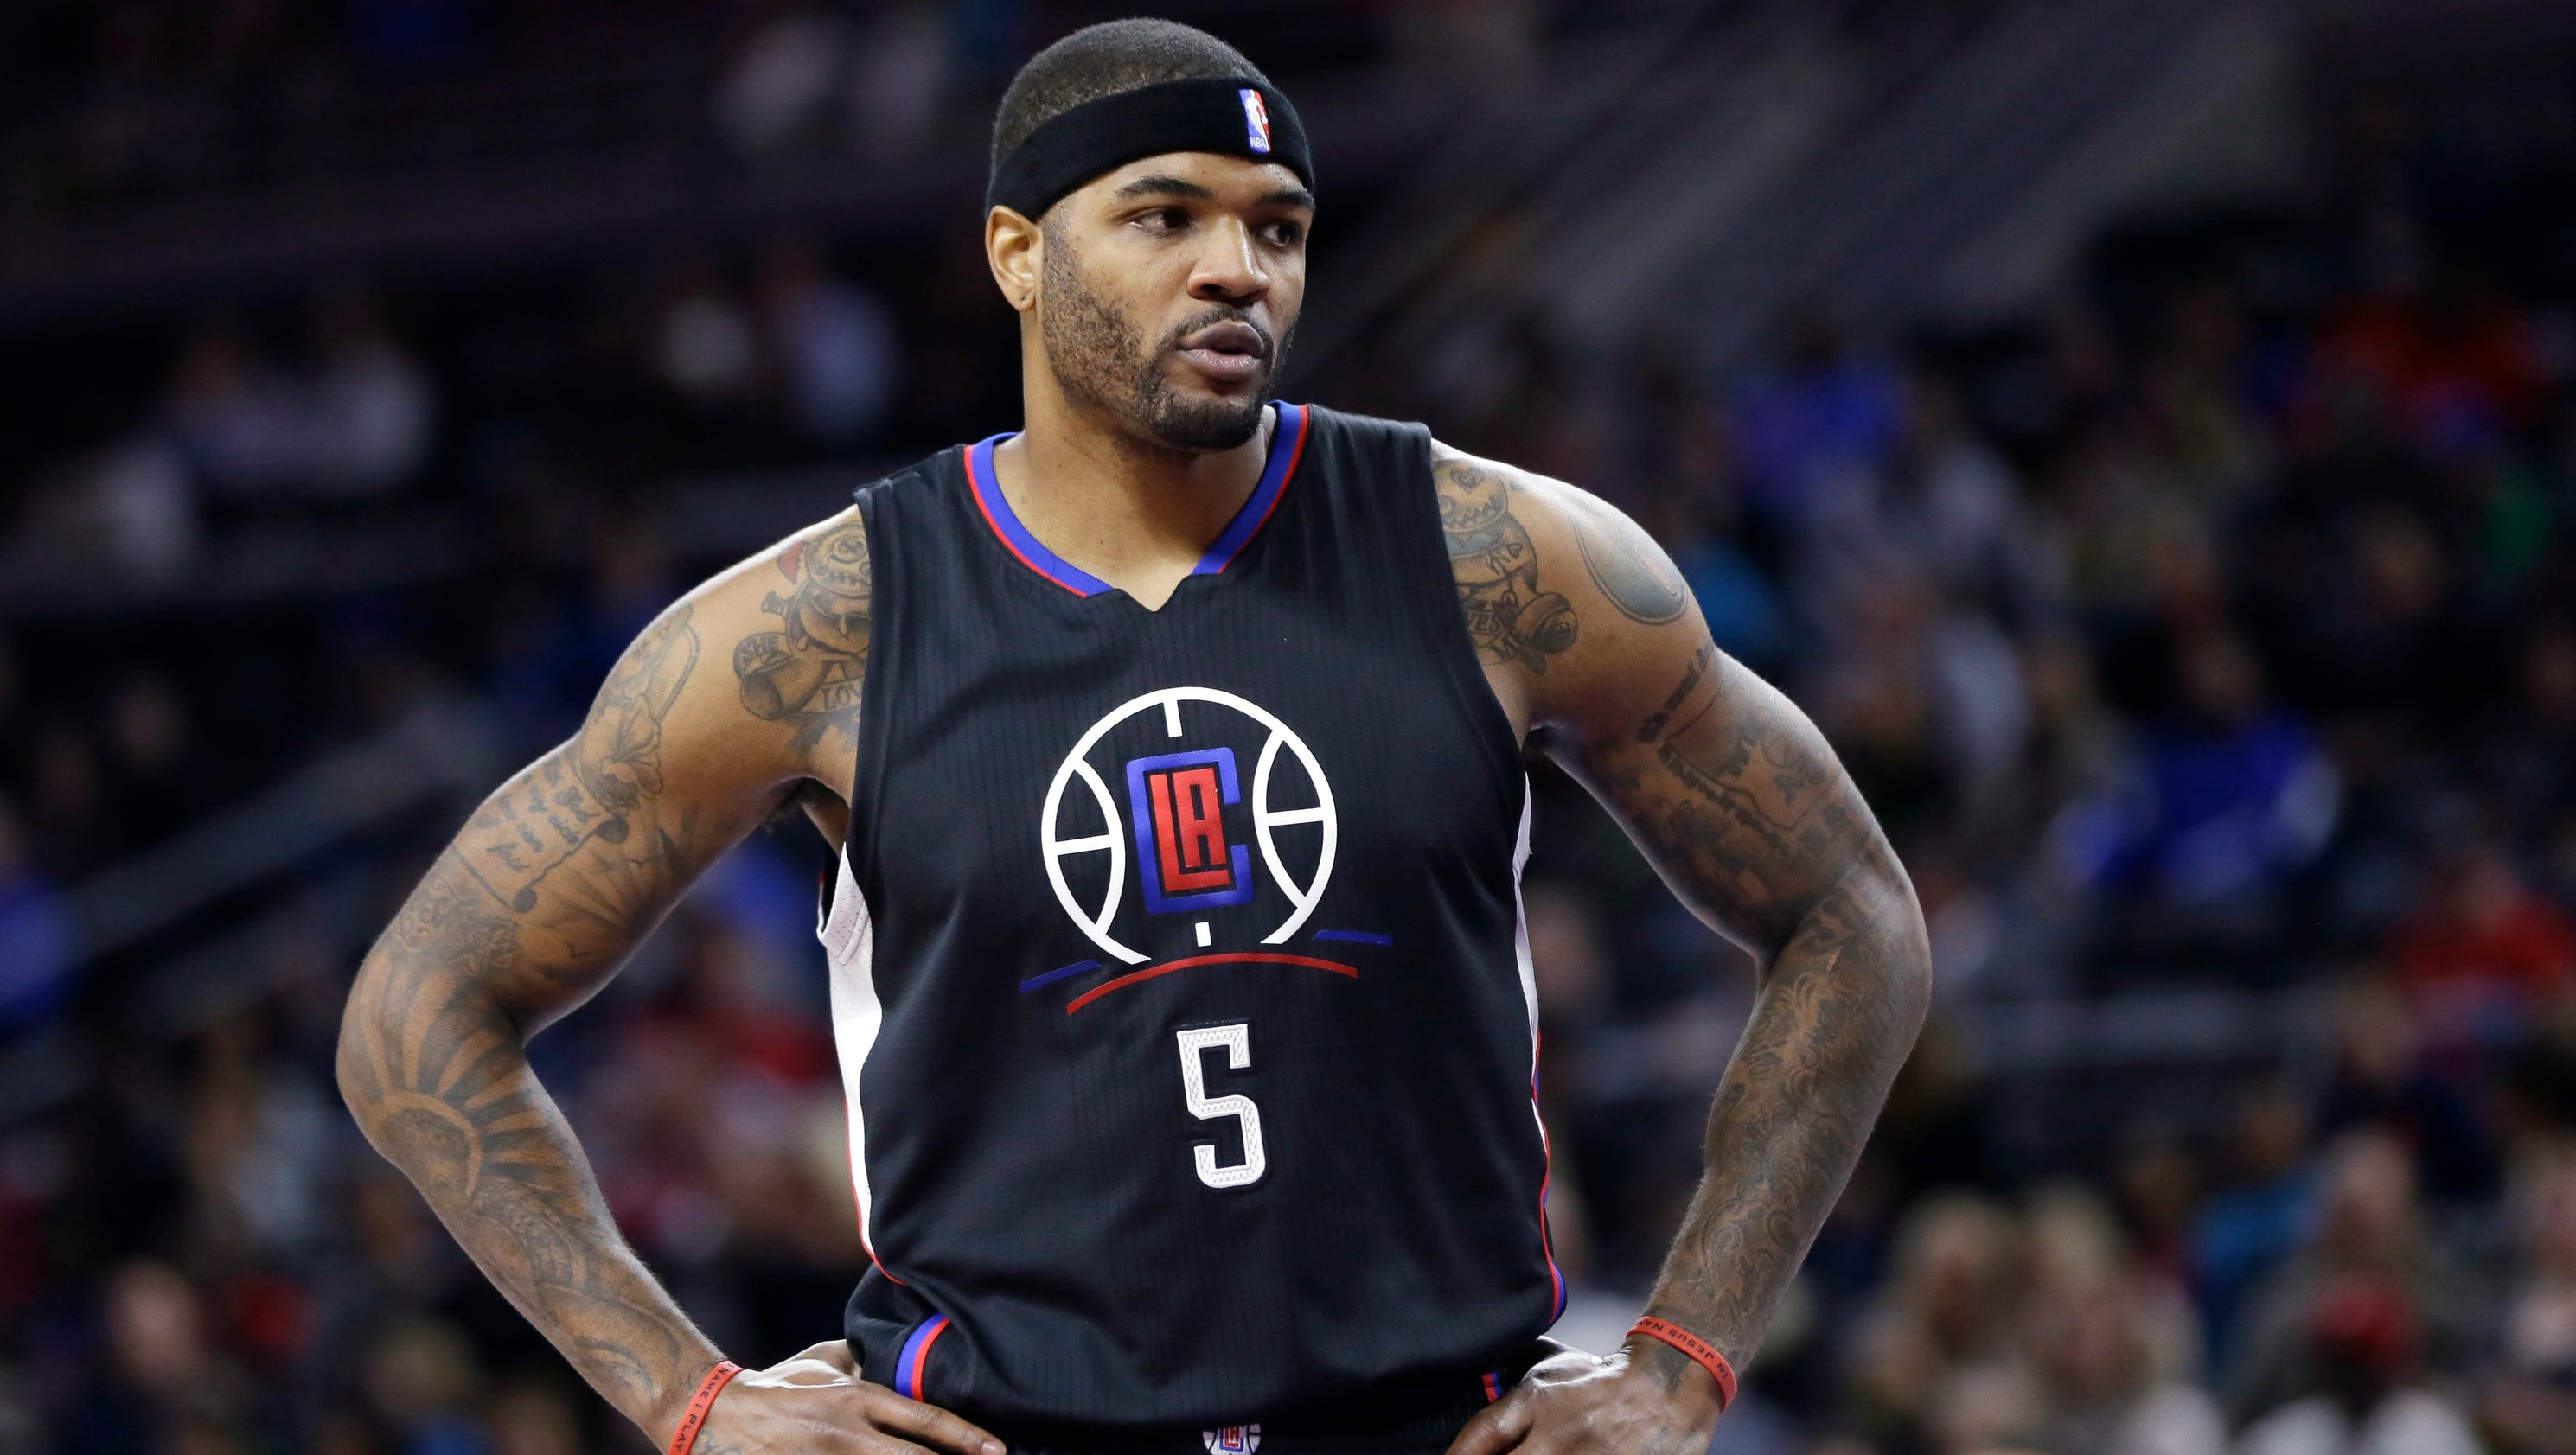 Josh Smith traded to Rockets from Clippers